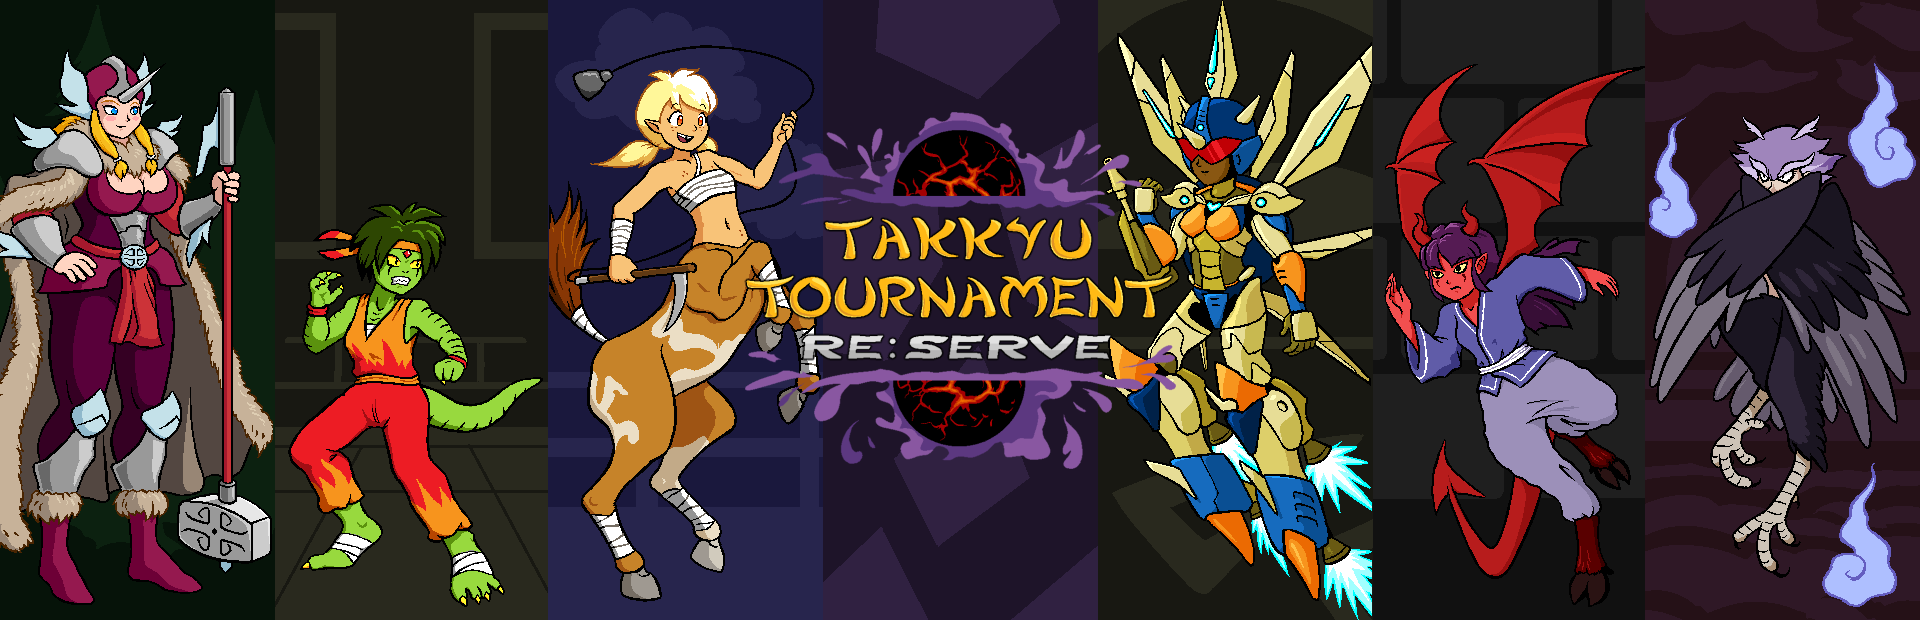 Takkyu Tournament Re:Serve